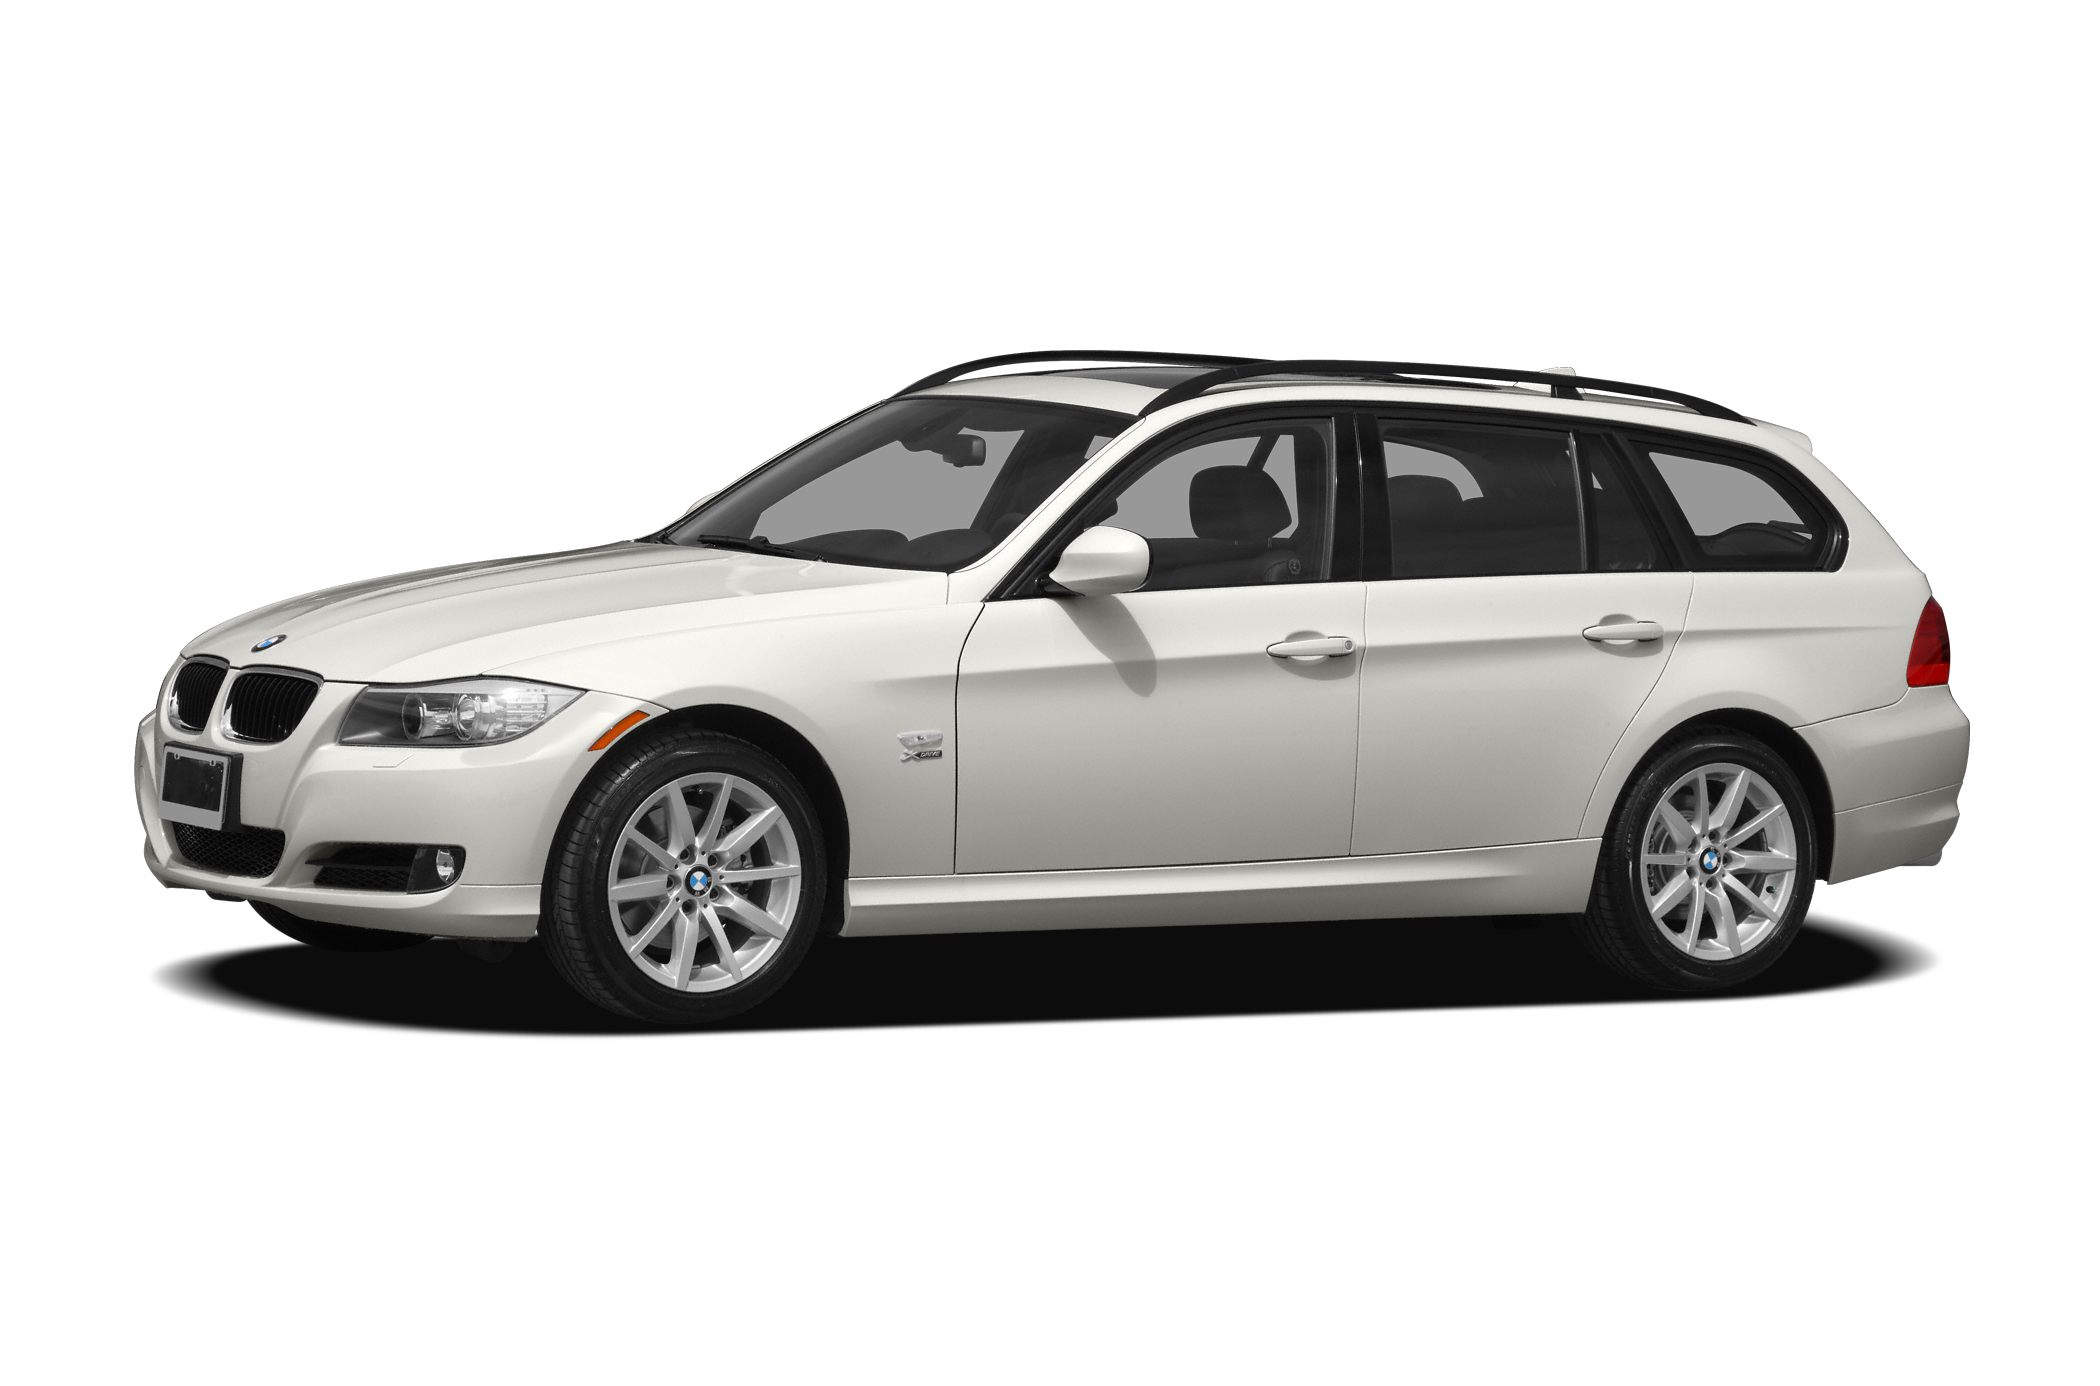 2011 BMW 328 I Convertible for sale in Parsippany for $27,995 with 25,540 miles